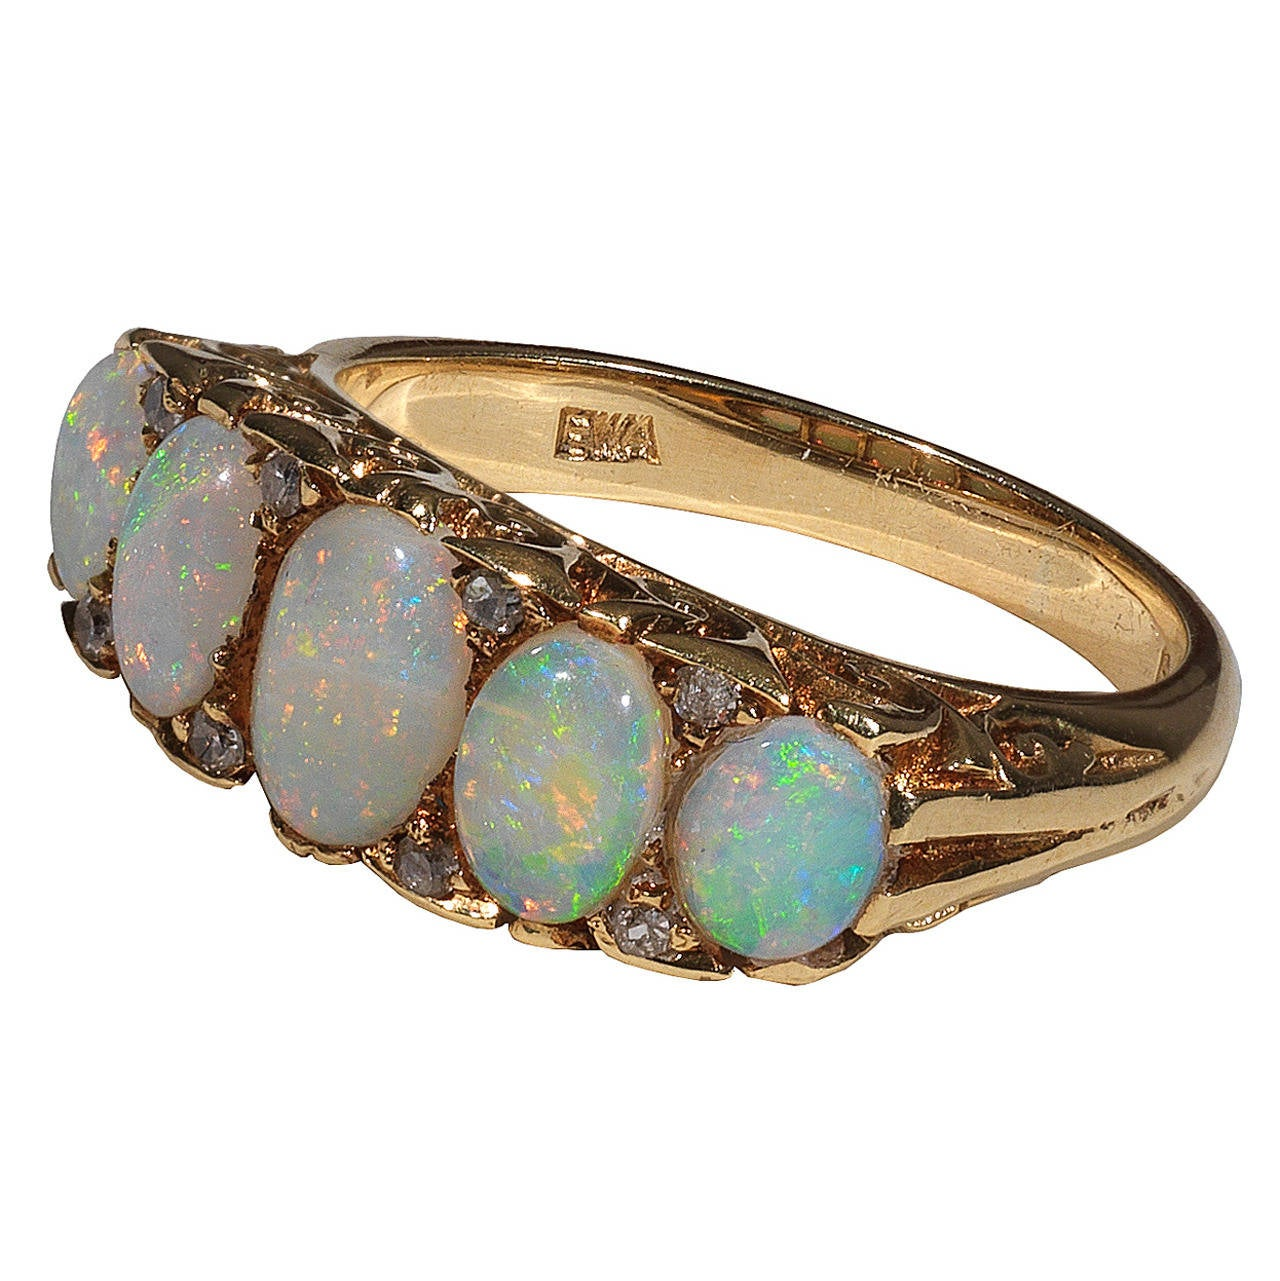 antique opal five ring at 1stdibs